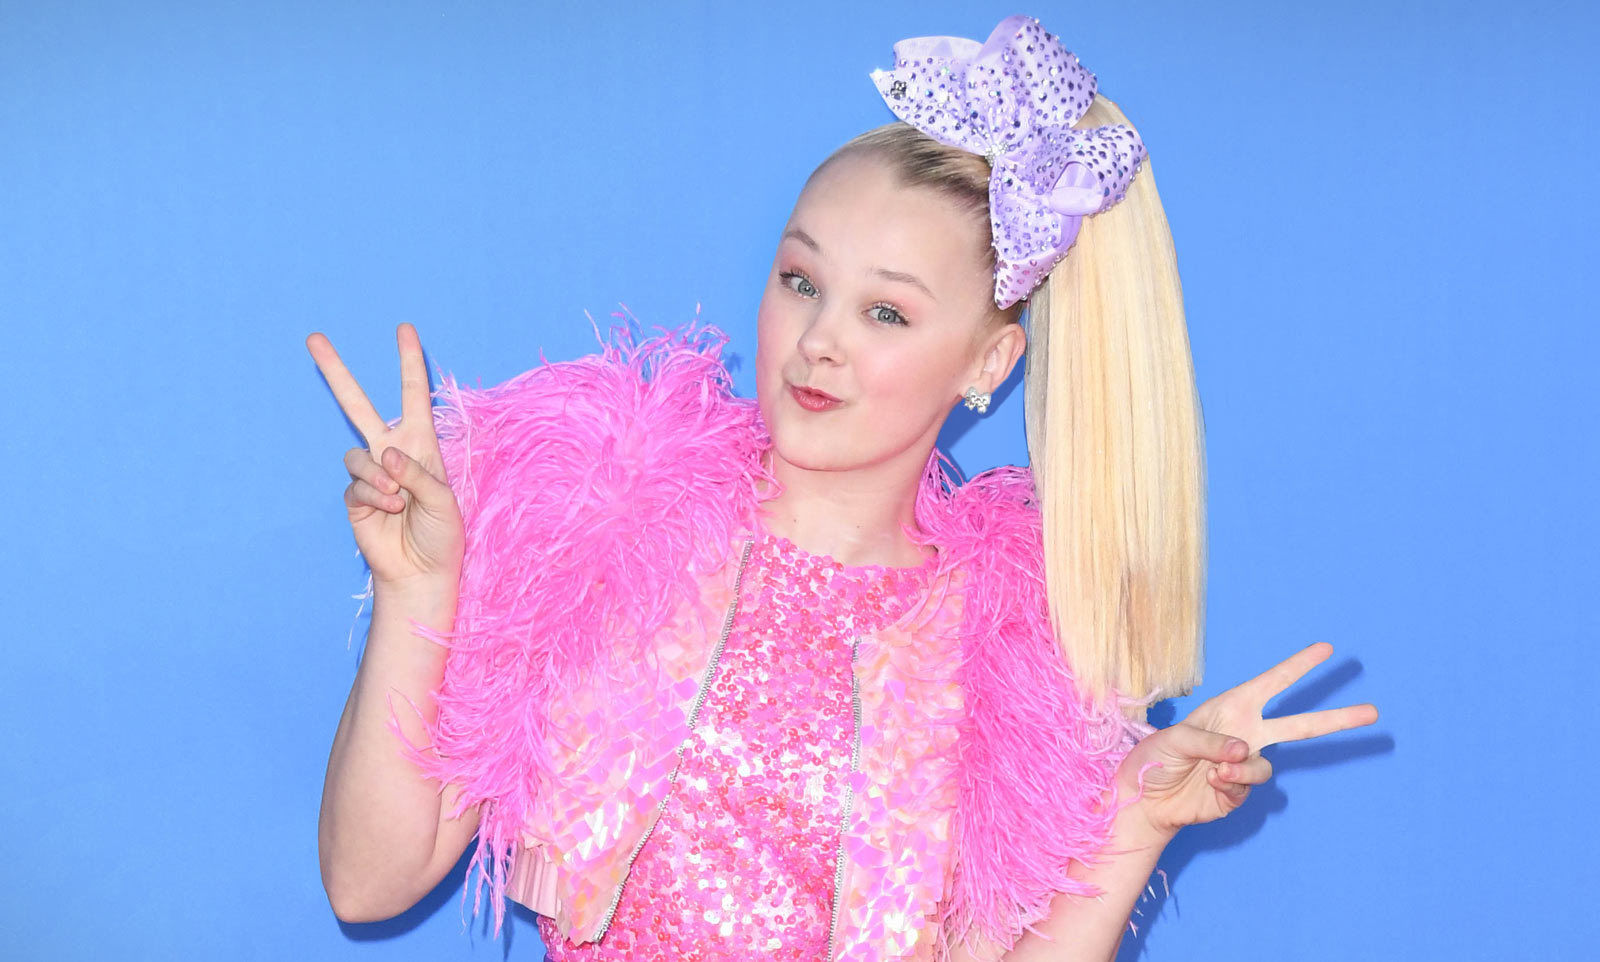 jojo-siwa-disables-her-instagram-comments-after-getting-really-mean-ones